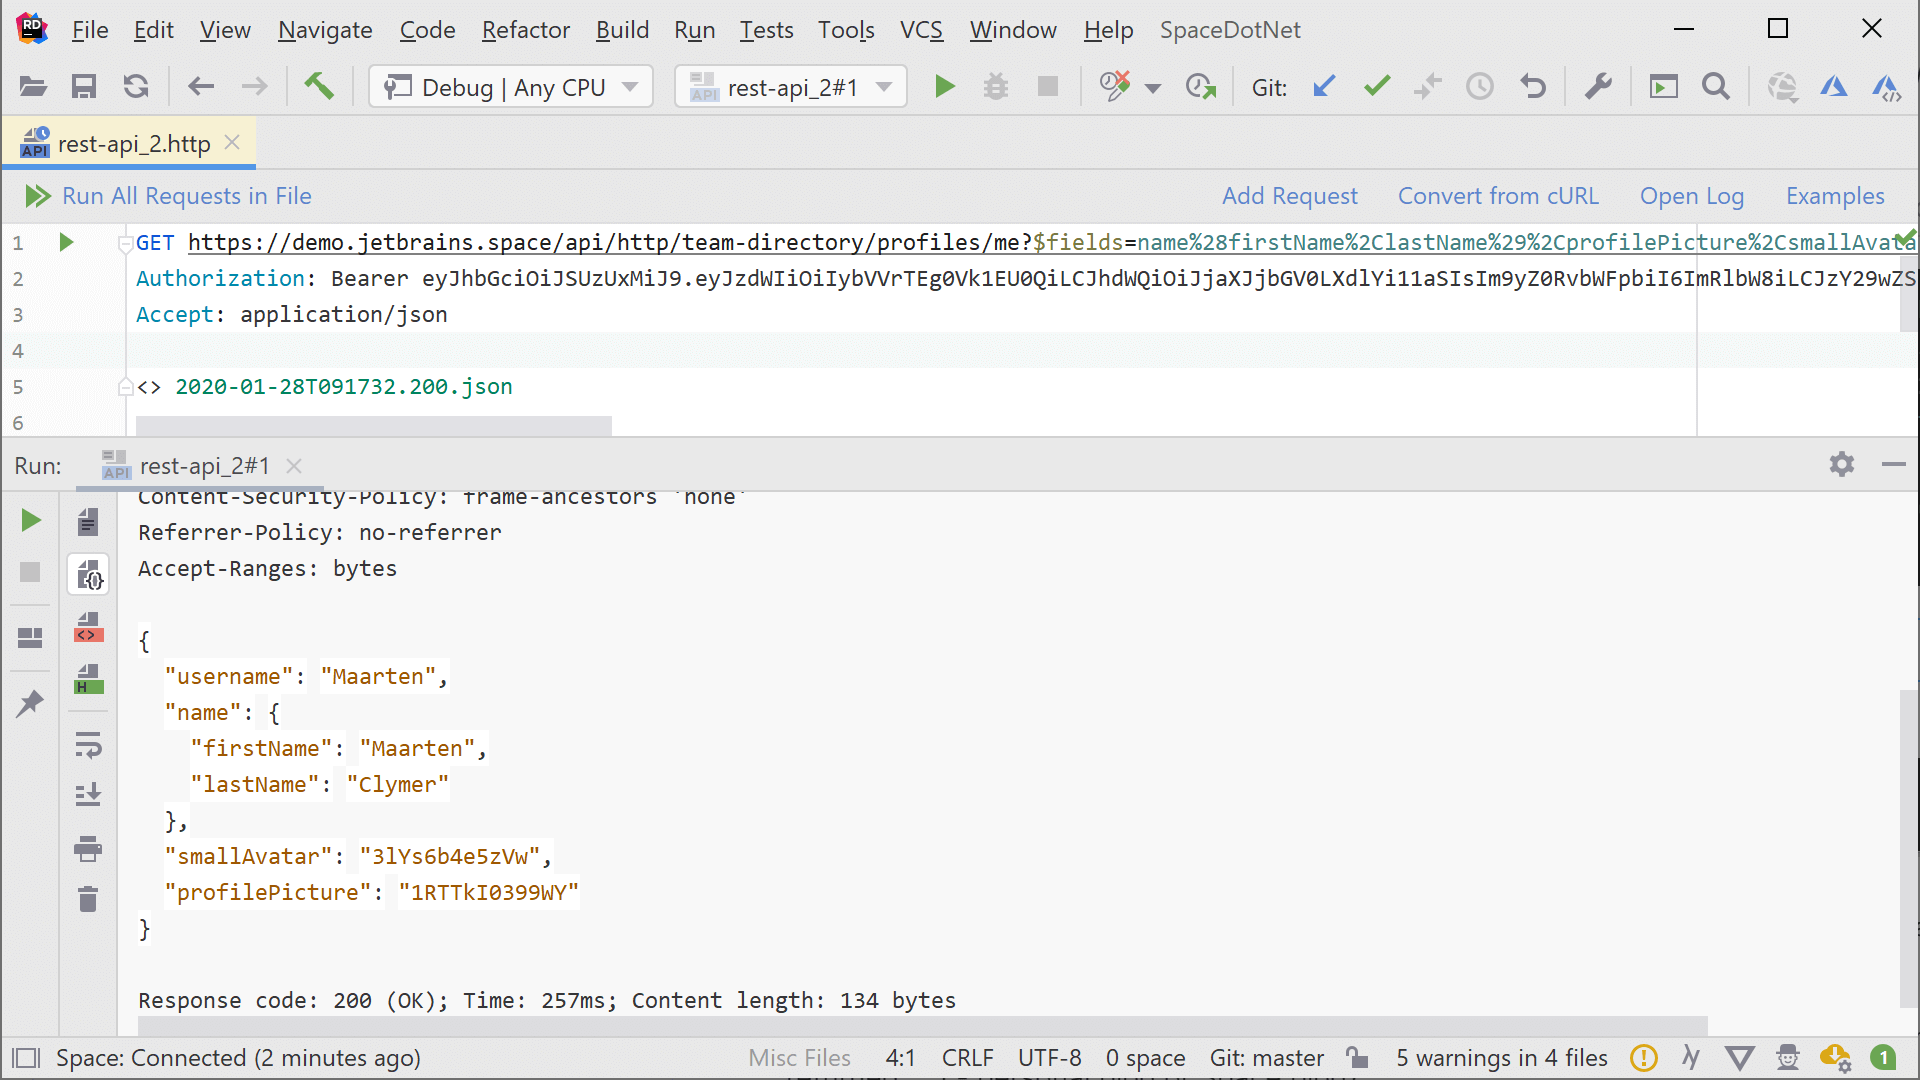 Invoke Space HTTP API from within Rider and other IntelliJ IDEA-based IDE's